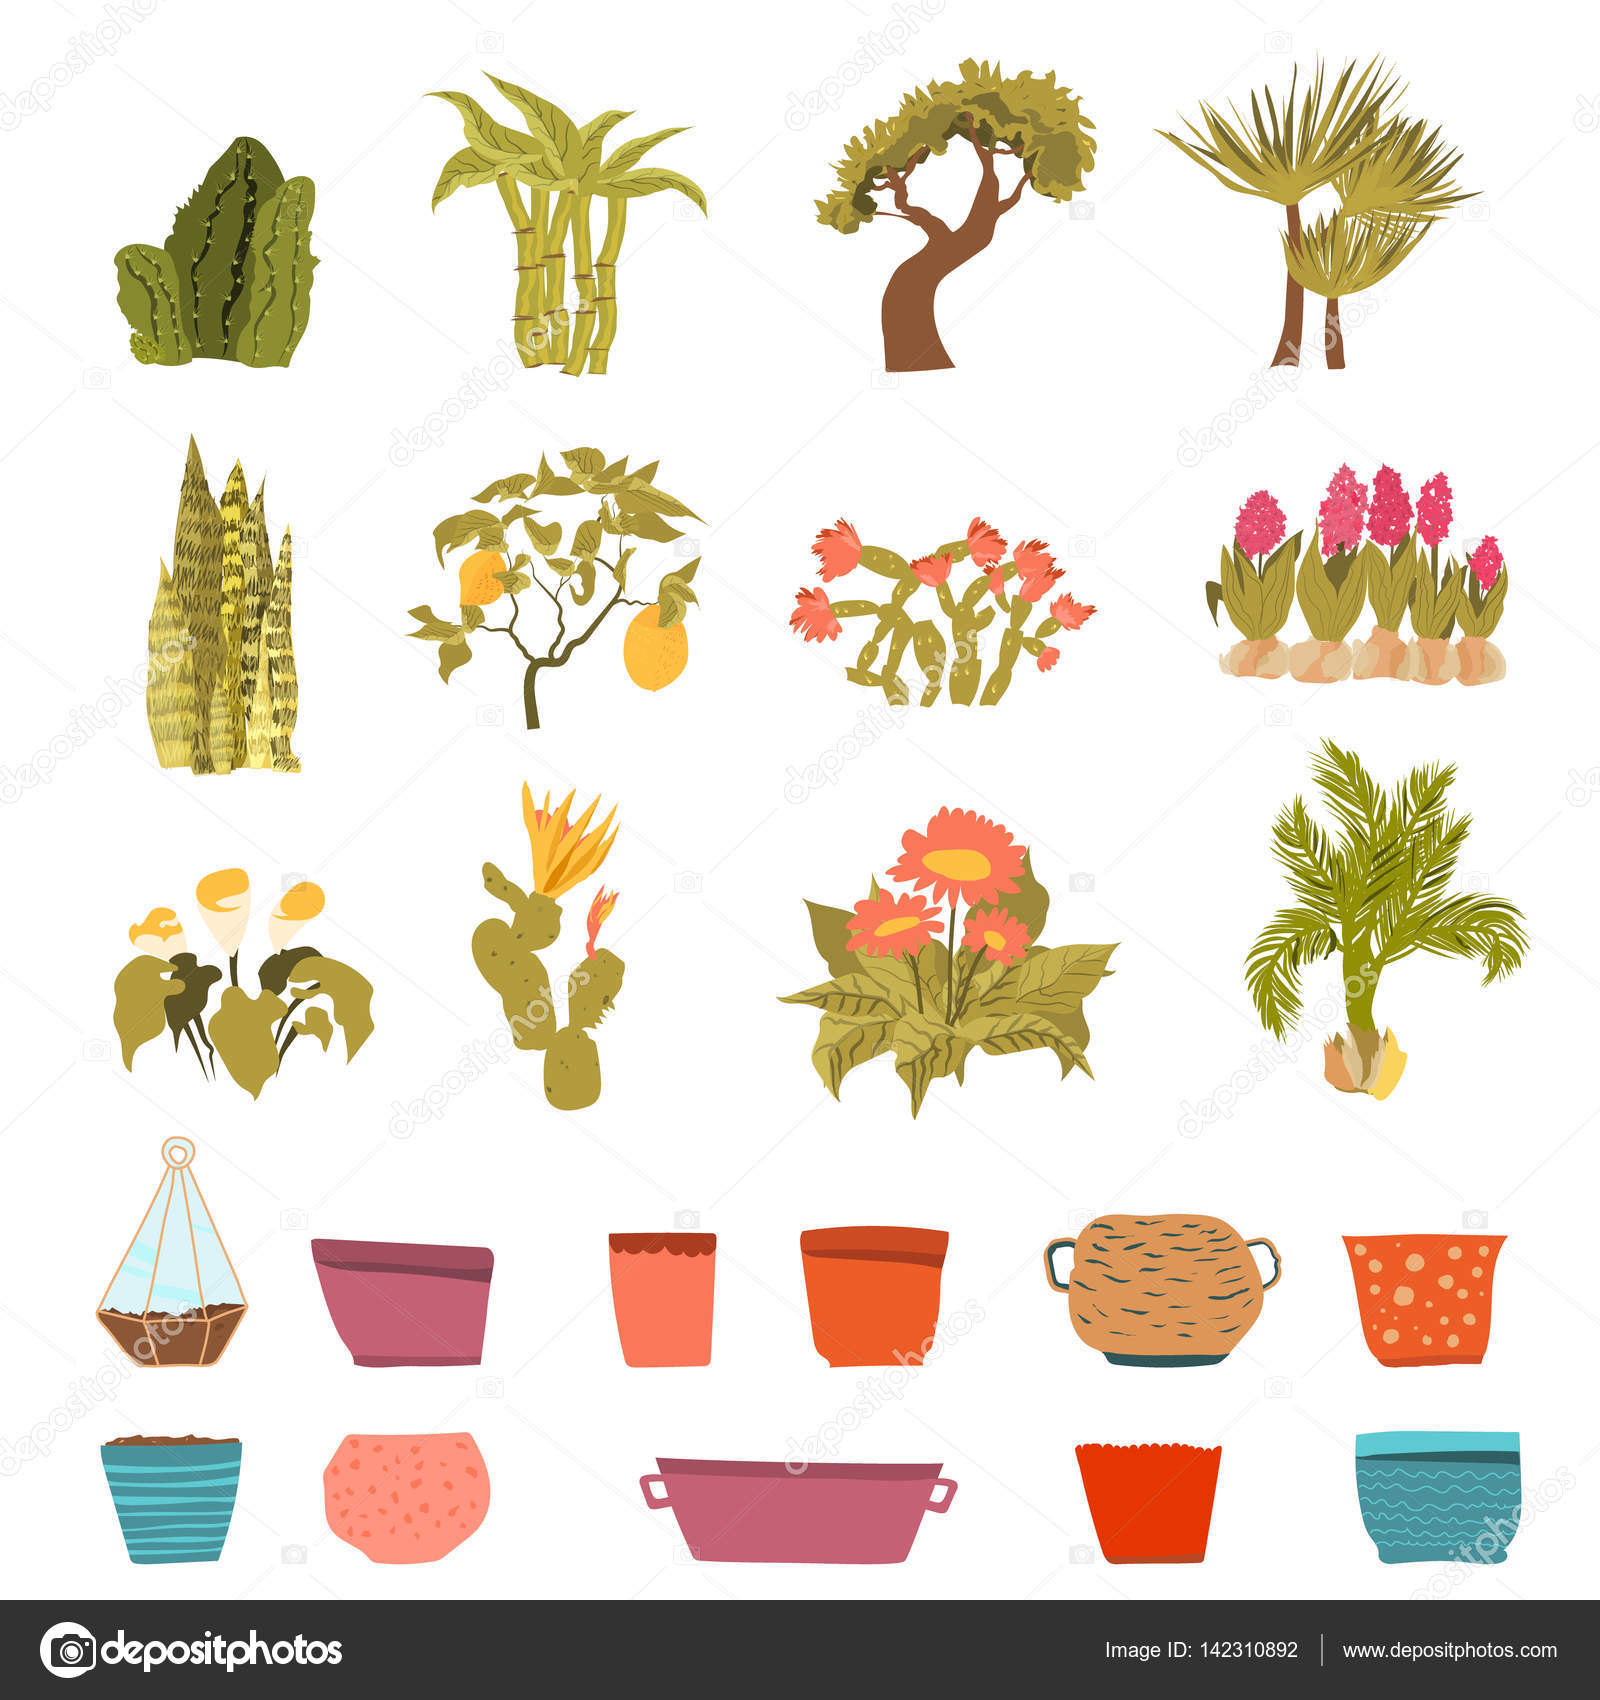 Set of green house plants with pots with leaf and flowers in cartoon style flowerpot isolated objects for creation unique houseplants collection vector